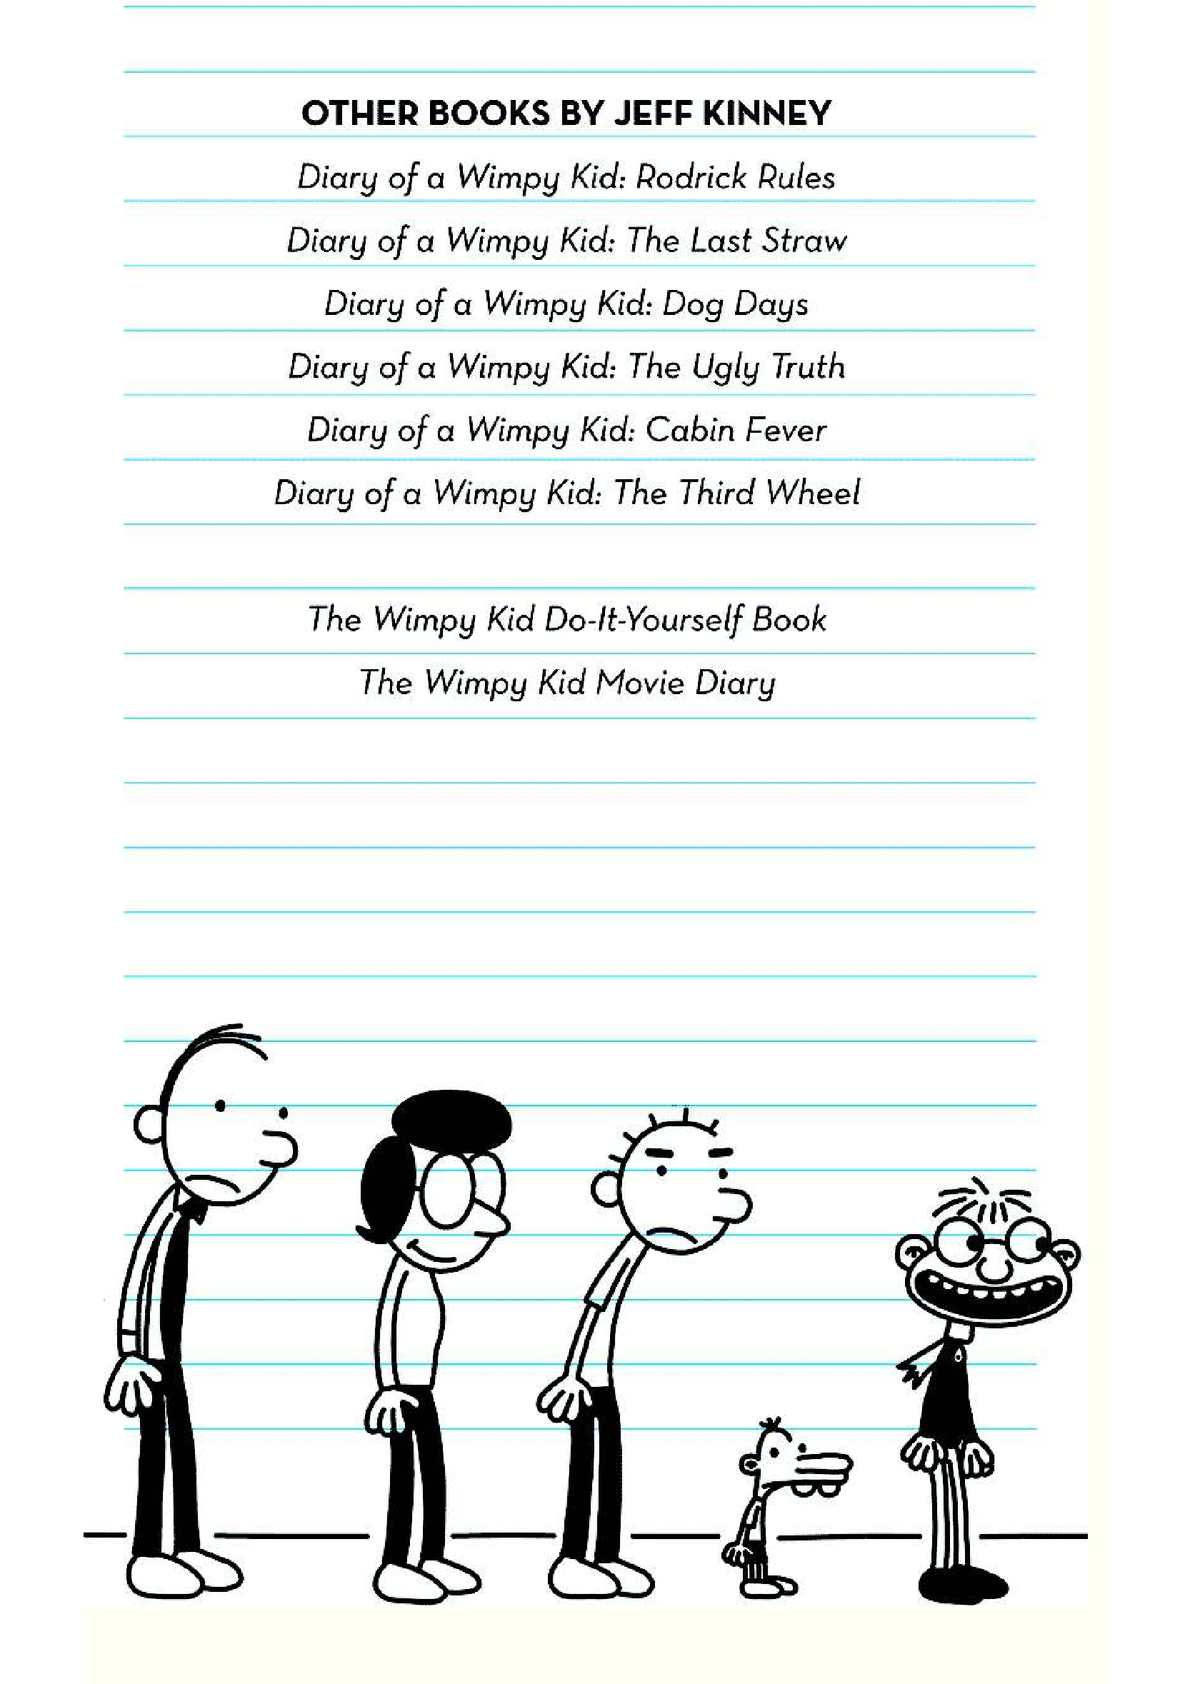 Diary of a wimpy kid 1 calameo downloader page 5 solutioingenieria Images